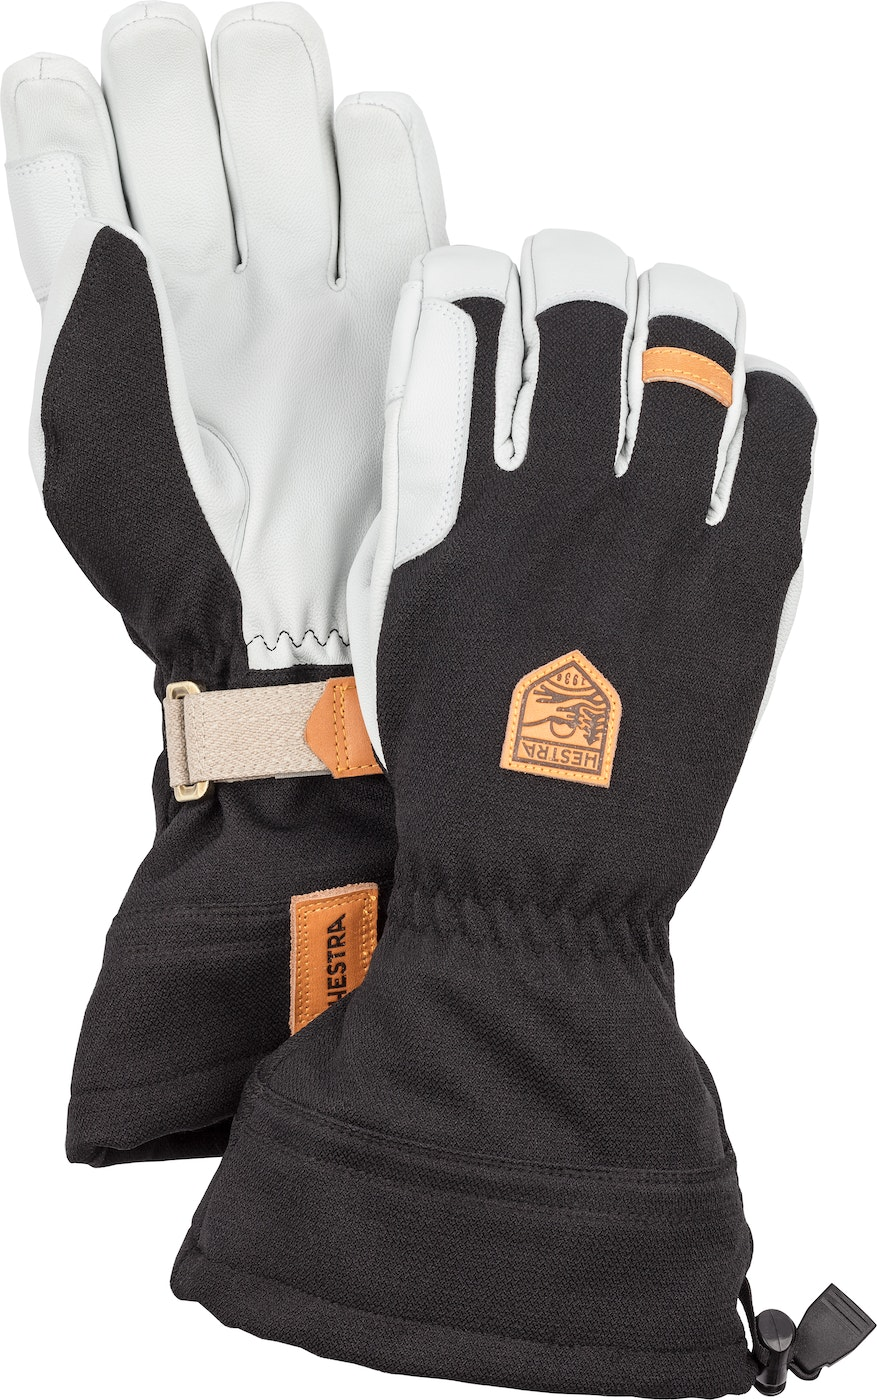 Product image for 30670 Army Leather Patrol Gauntlet